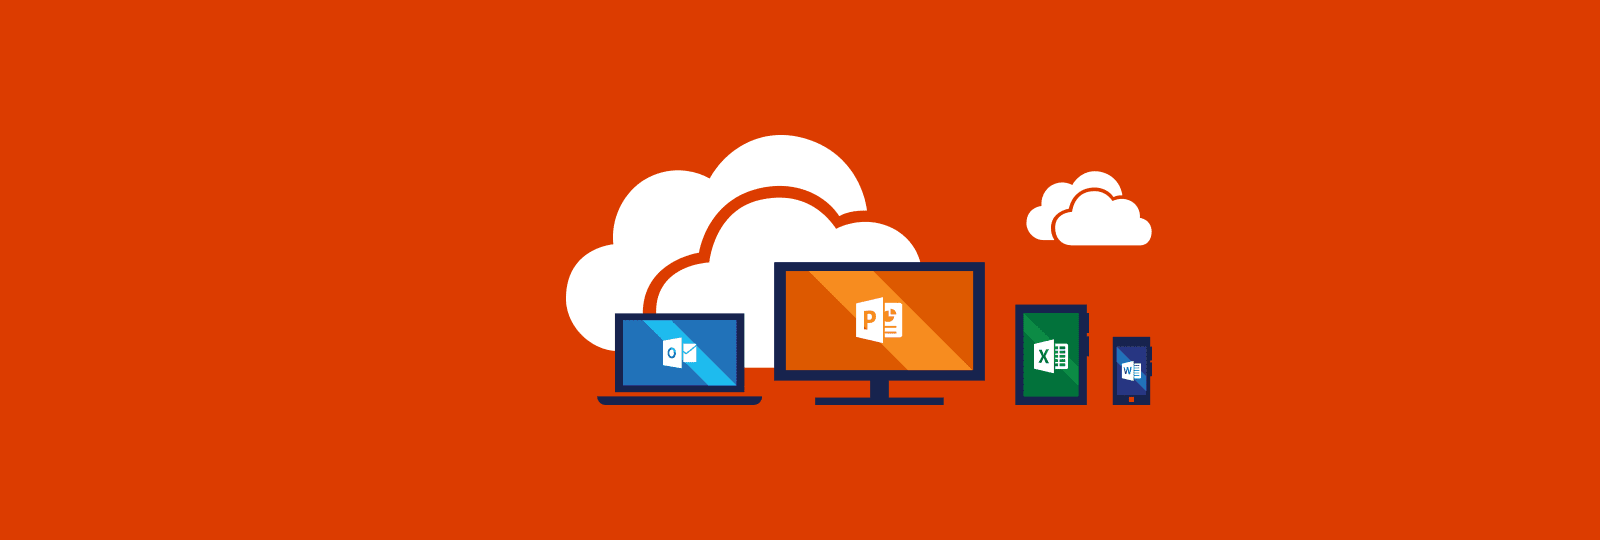 Microsoft Office 365 Across Devices